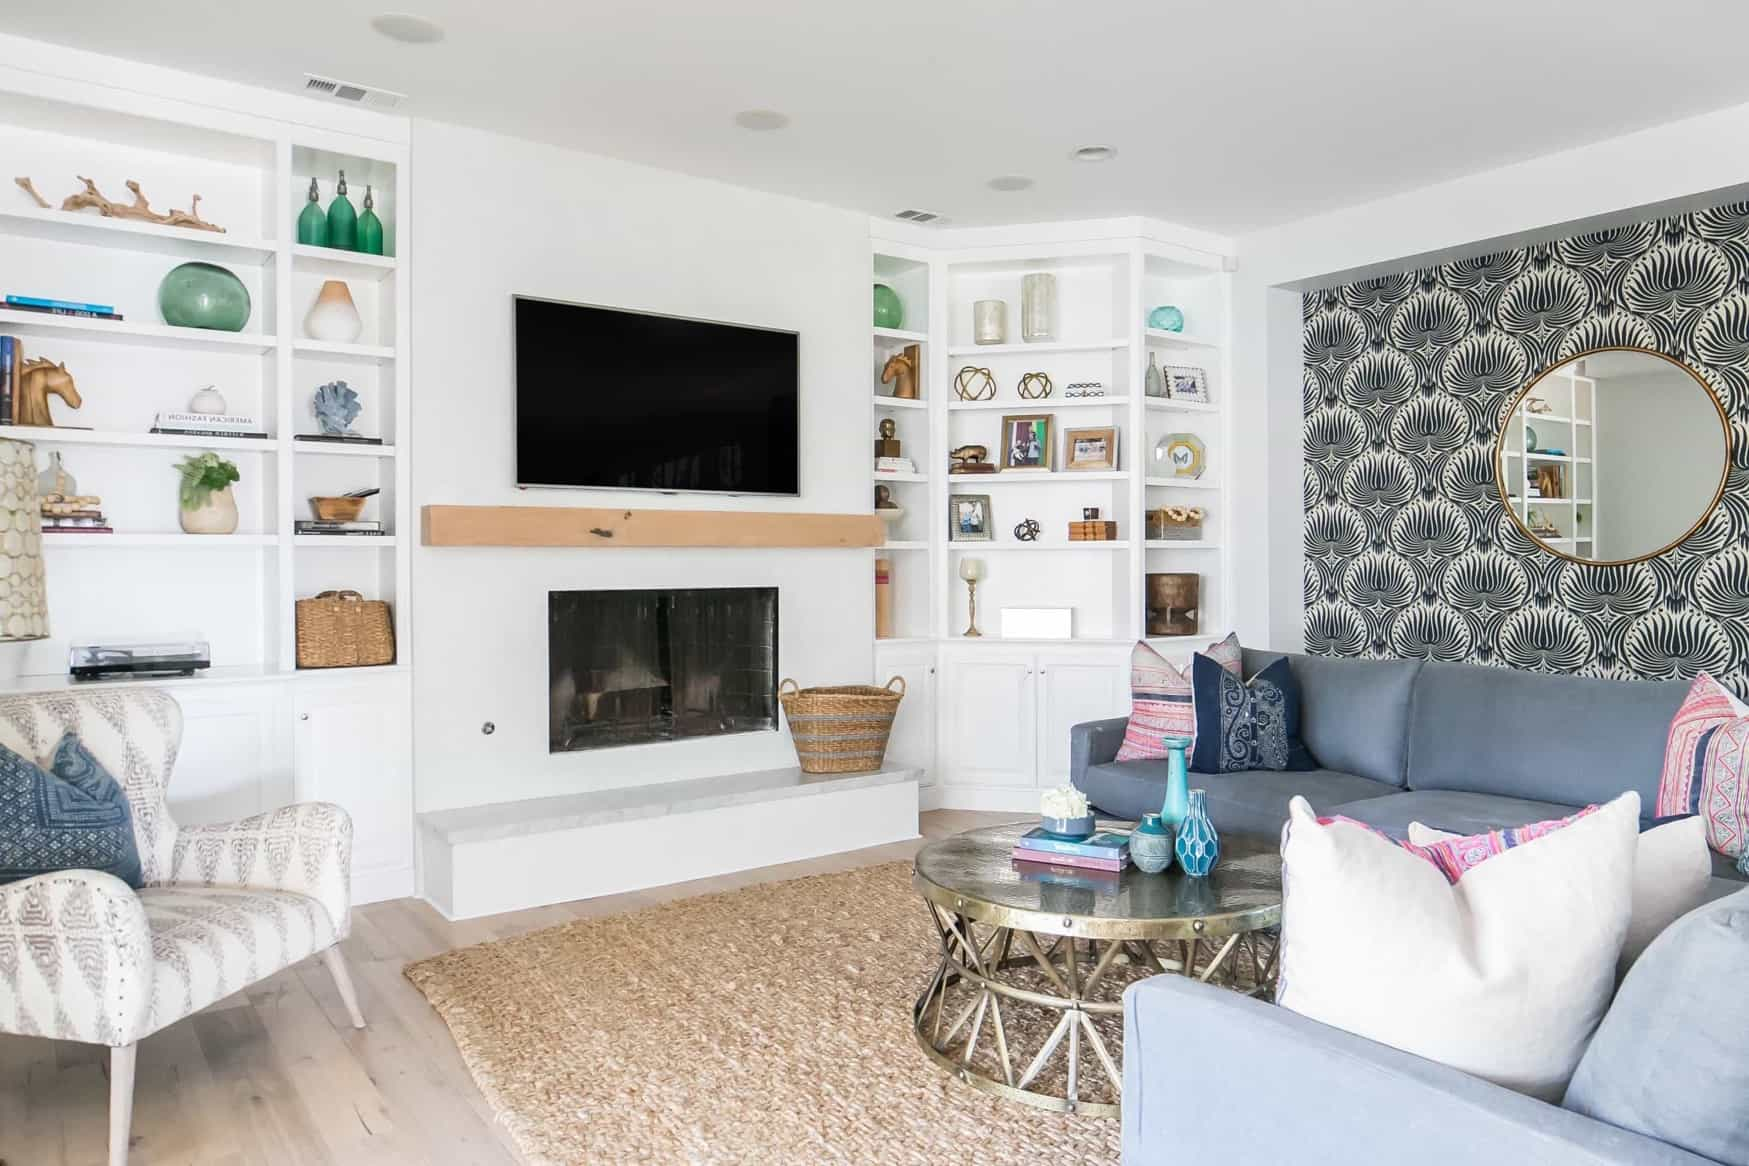 Featured Image of Coastal Living Room With Seashell Wallpaper And Built In Bookcases